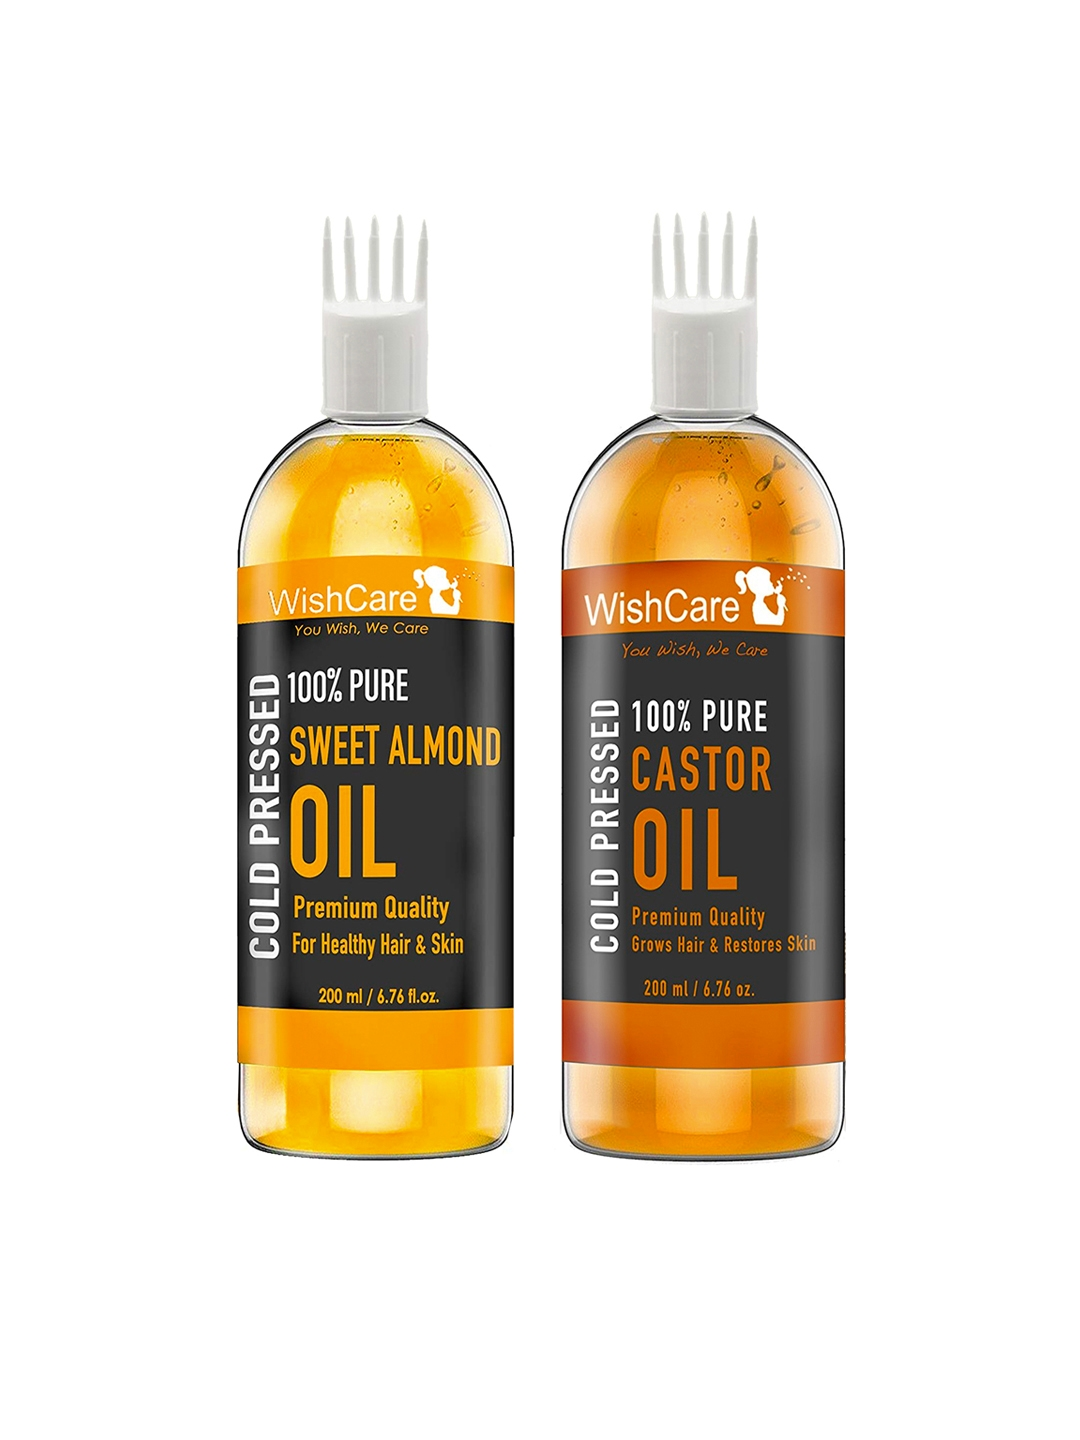 WishCare Unisex Combo of 100% Pure Castor Oil and Sweet Almond Oil 400 ml